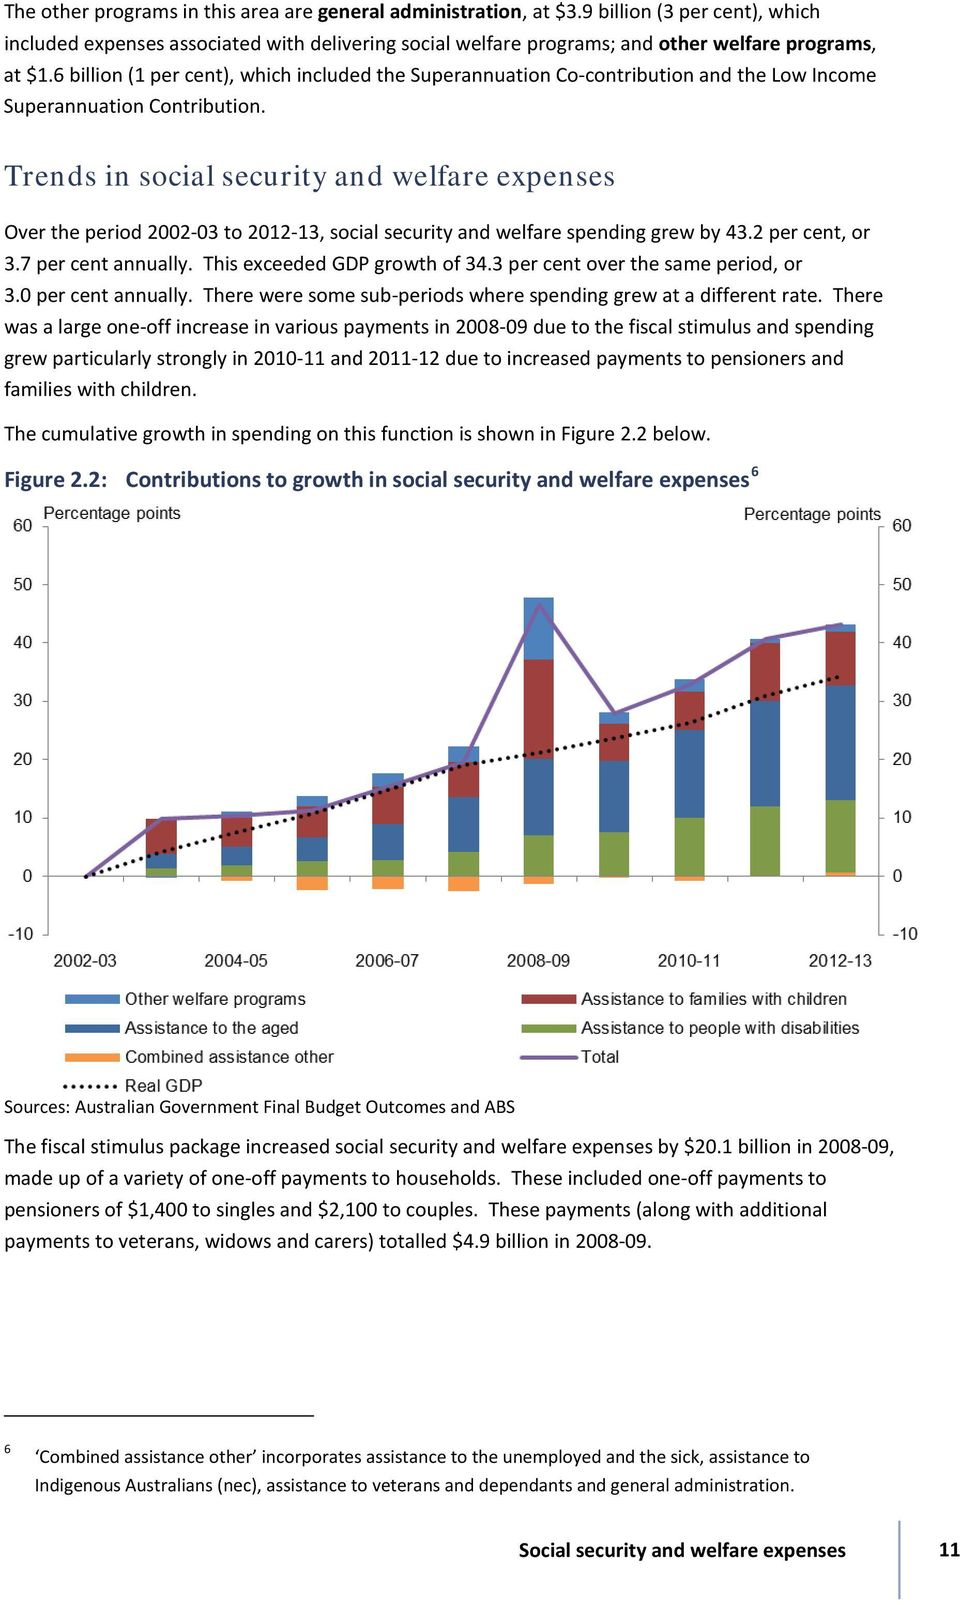 Trends in social security and welfare expenses Over the period 2002-03 to 2012-13, social security and welfare spending grew by 43.2 per cent, or 3.7 per cent annually. This exceeded GDP growth of 34.